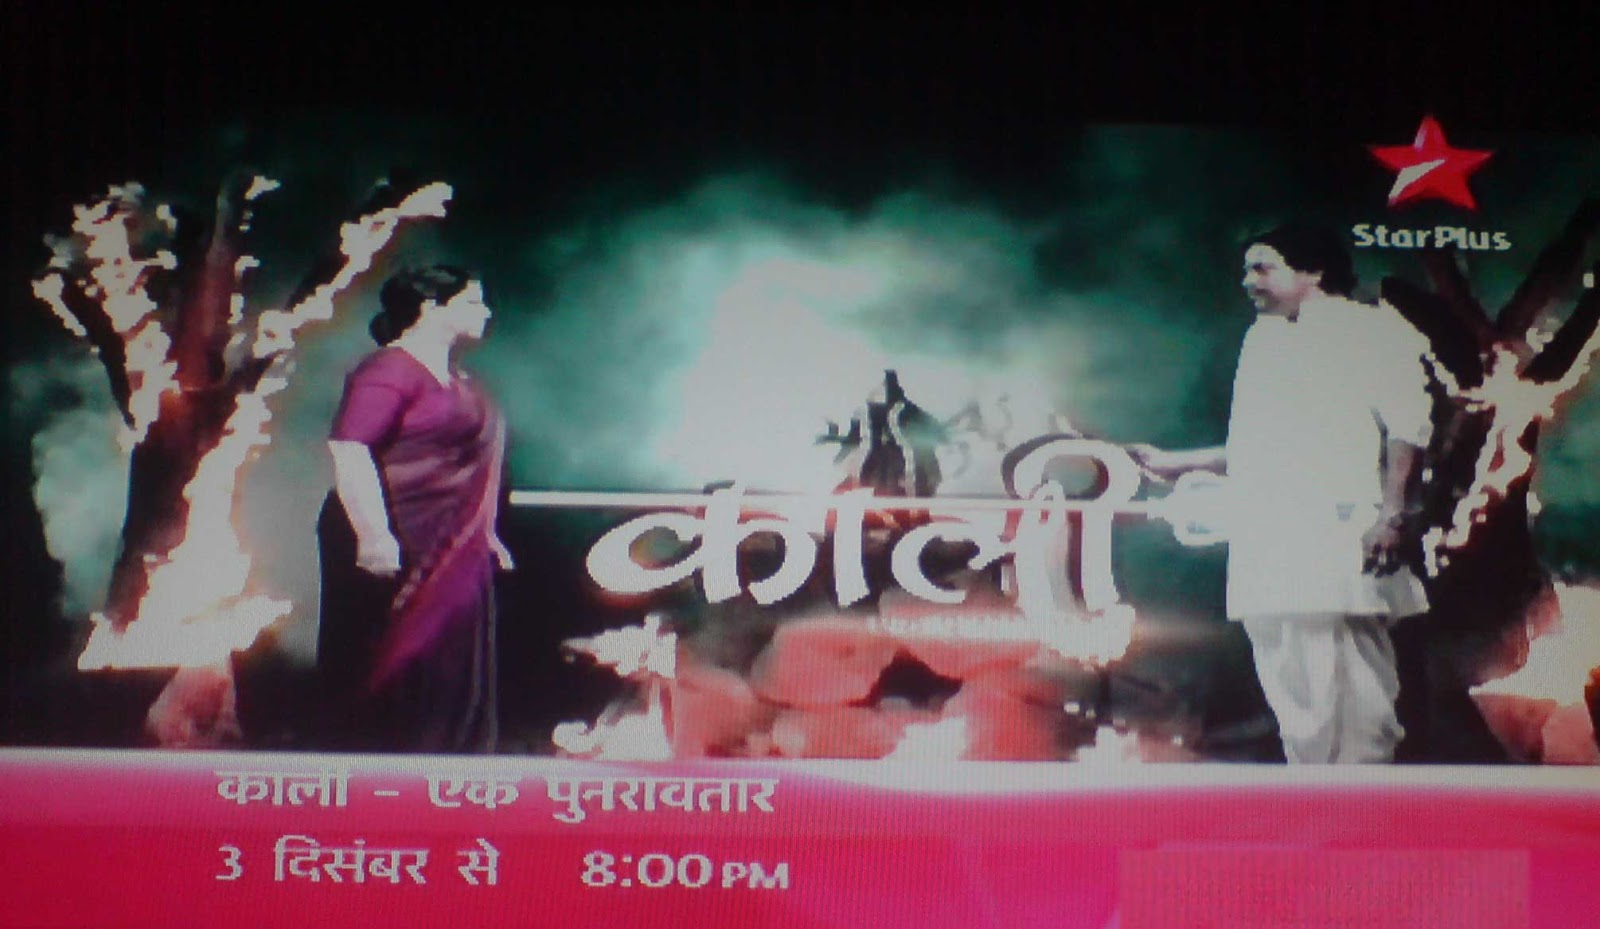 Kaali - Ek Punar Avataar New Serial Coming Soon on STAR PLUS